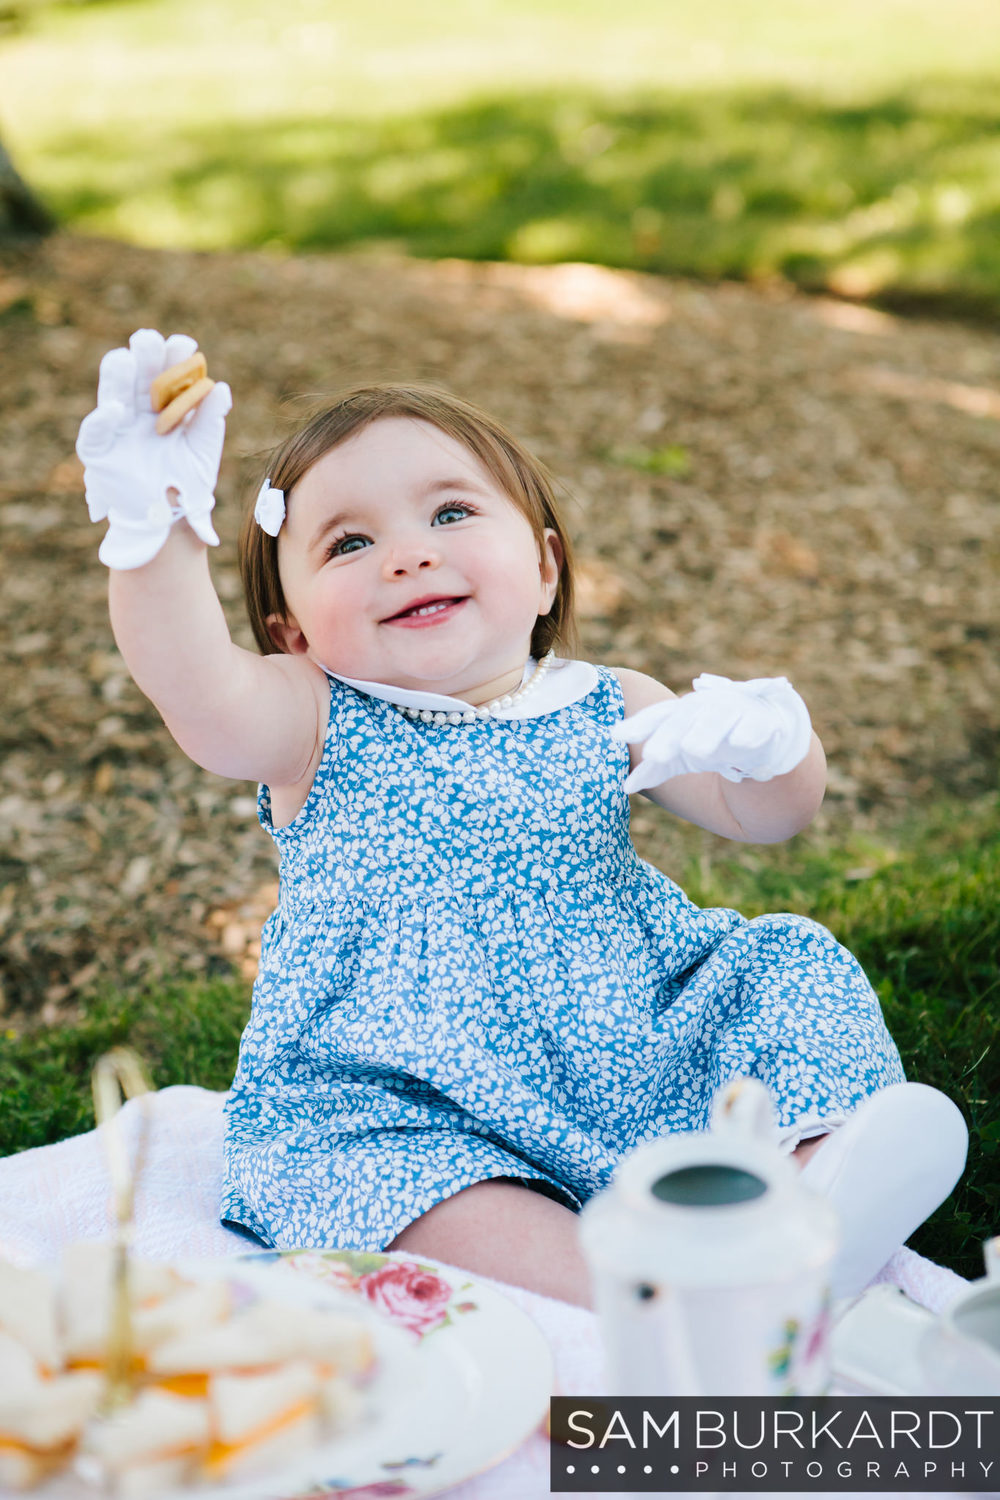 sburkardt_family_portraits_photoshoot_ridgefield_connecticut_summer_tea_party_012.jpg